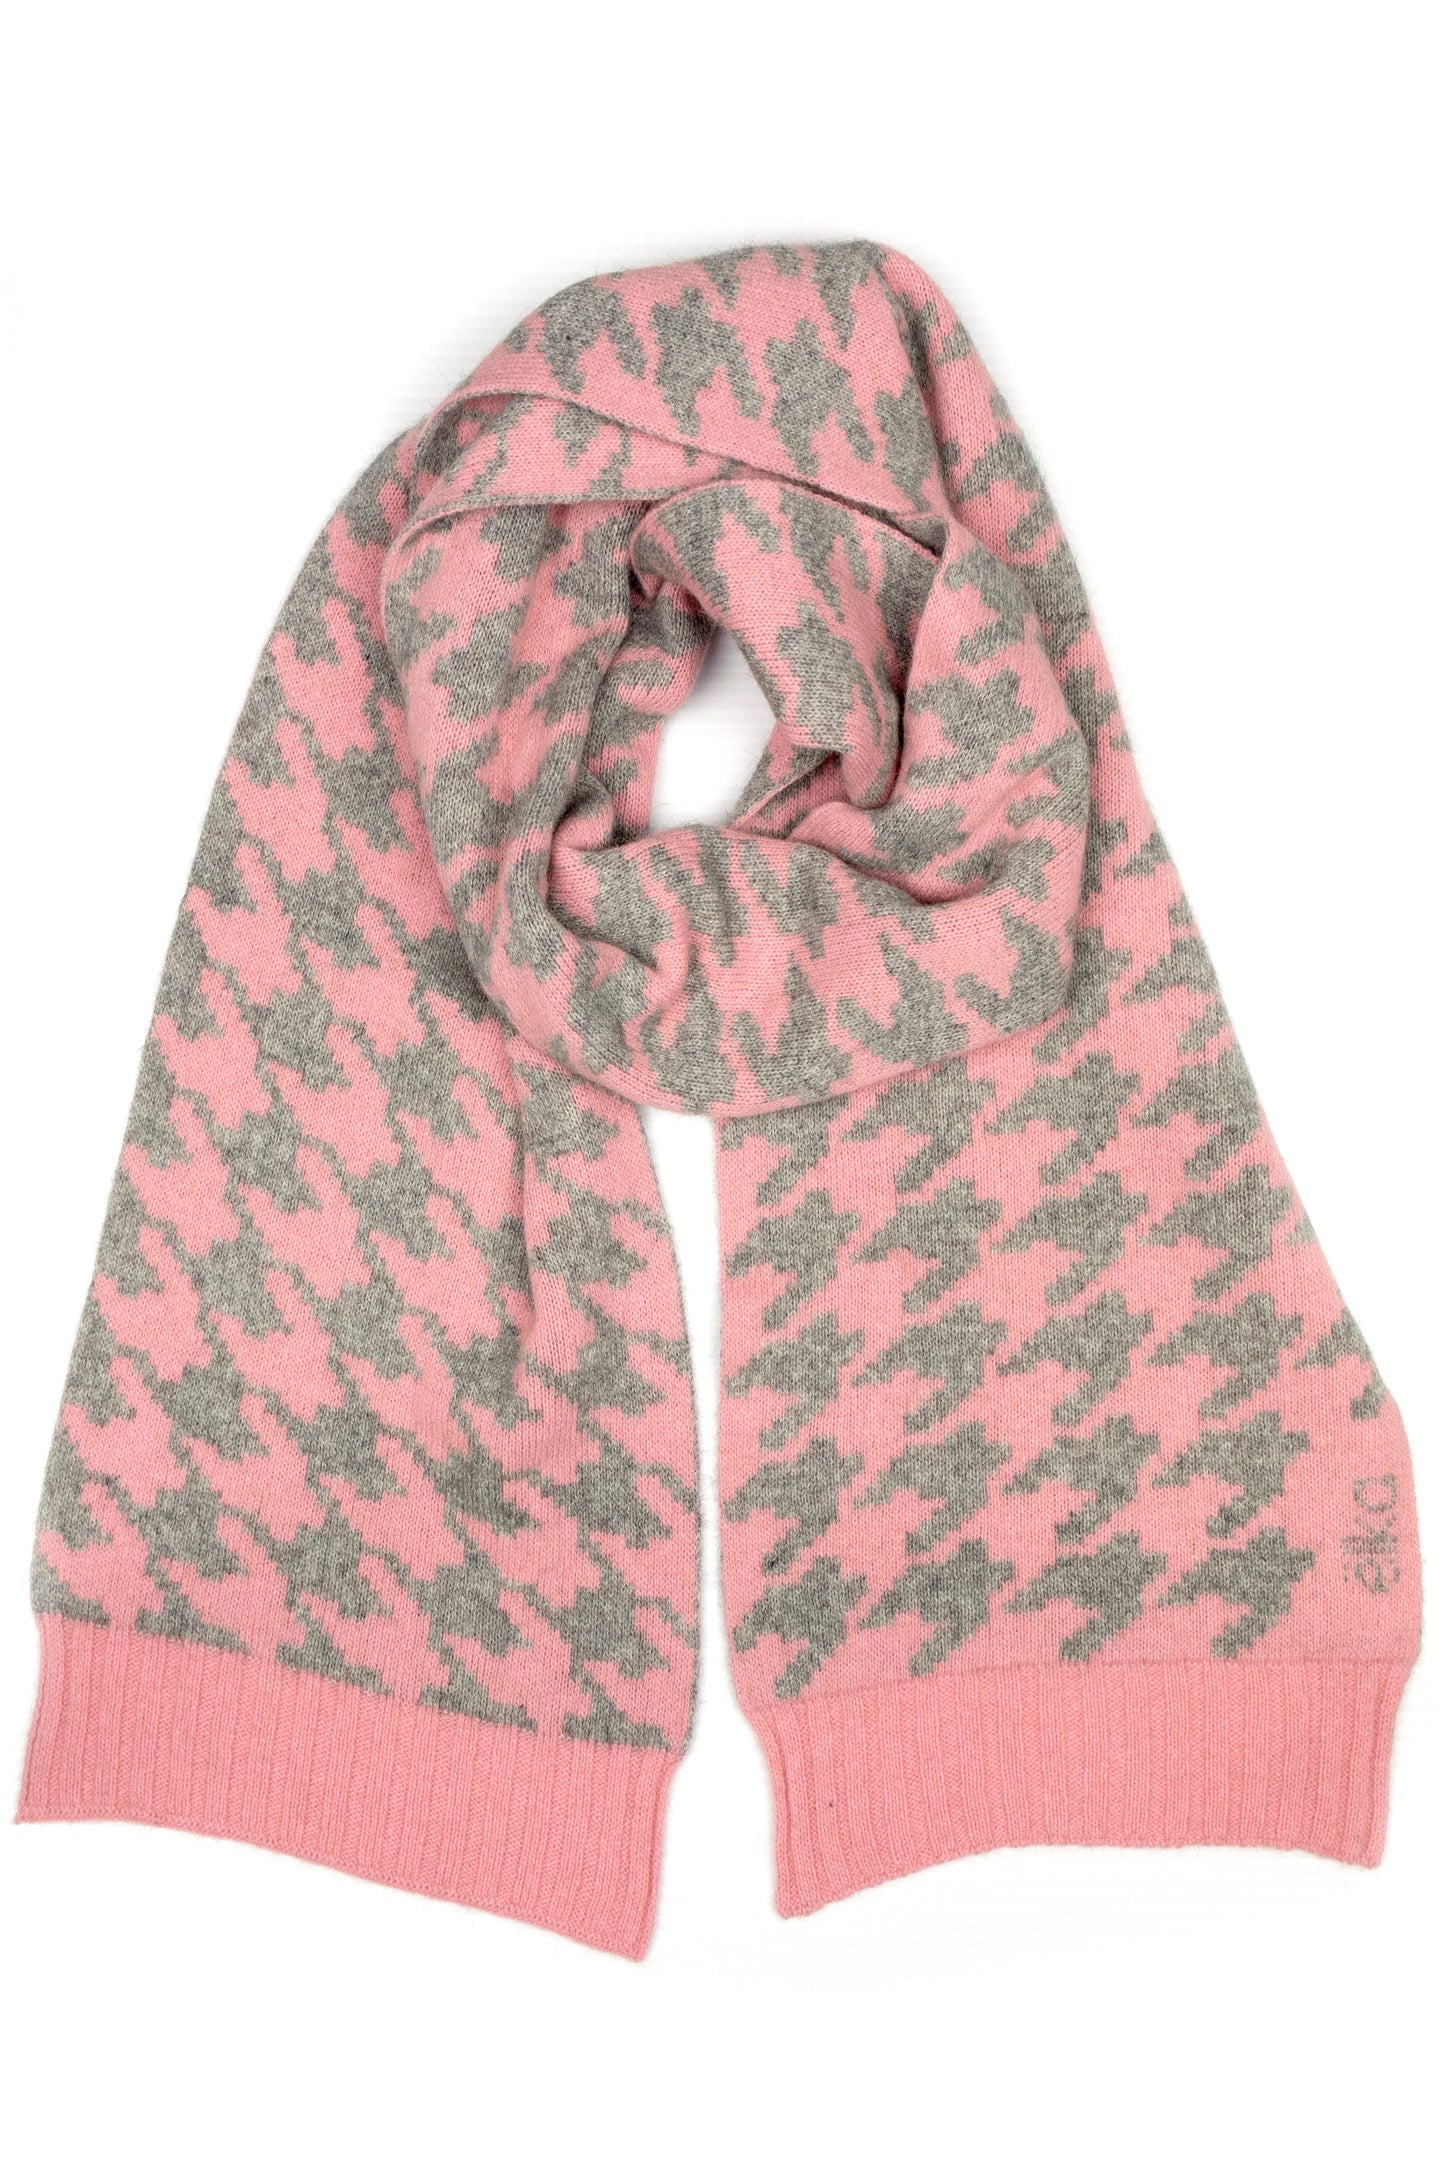 Possum Silk Merino Houndstooth Scarf in Pearl and Grey Marl